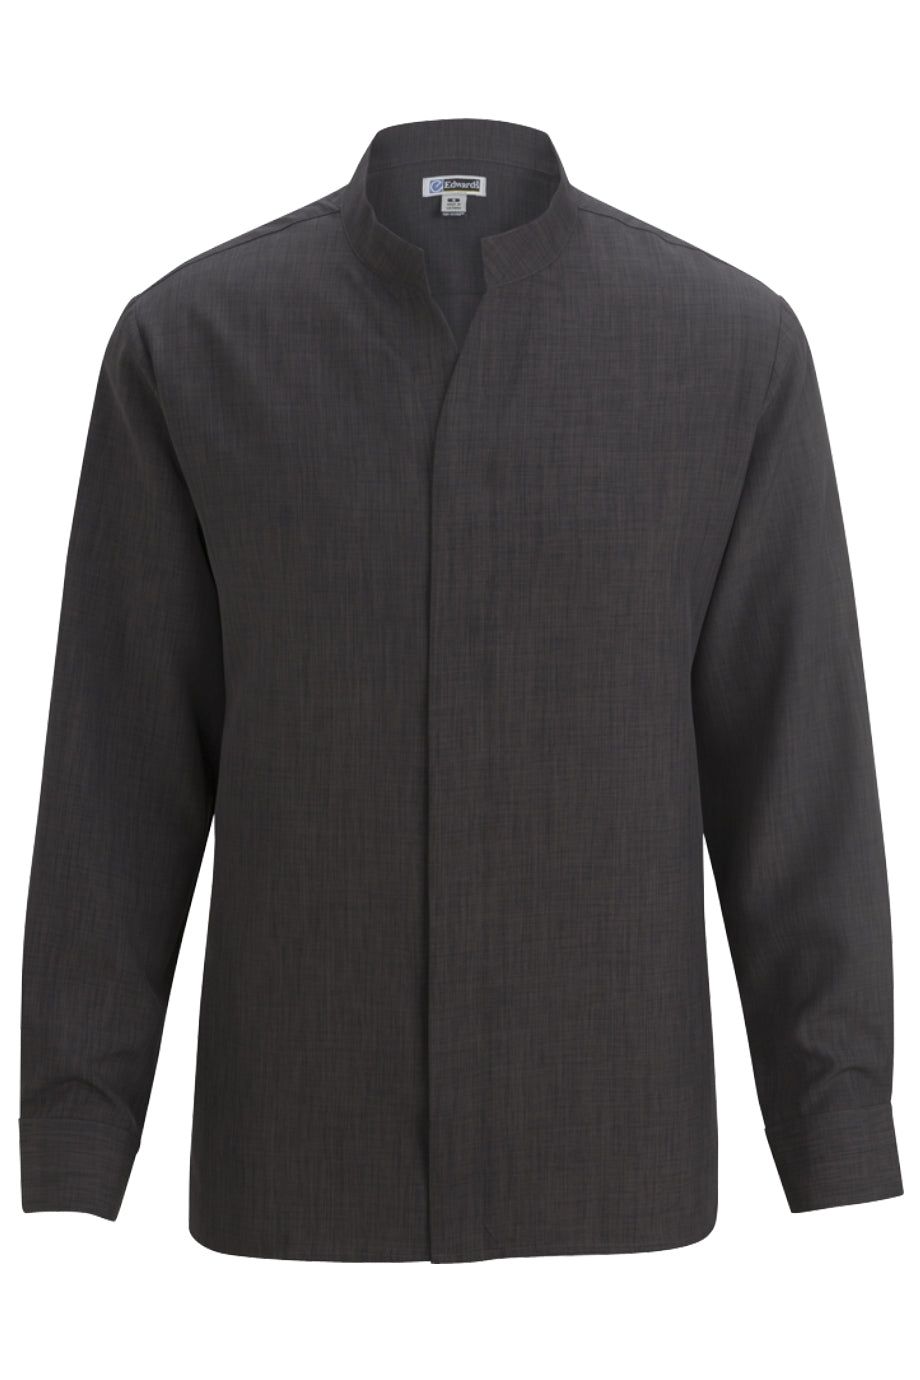 Steel Grey Edwards Mens Stand-Up Collar Shirt